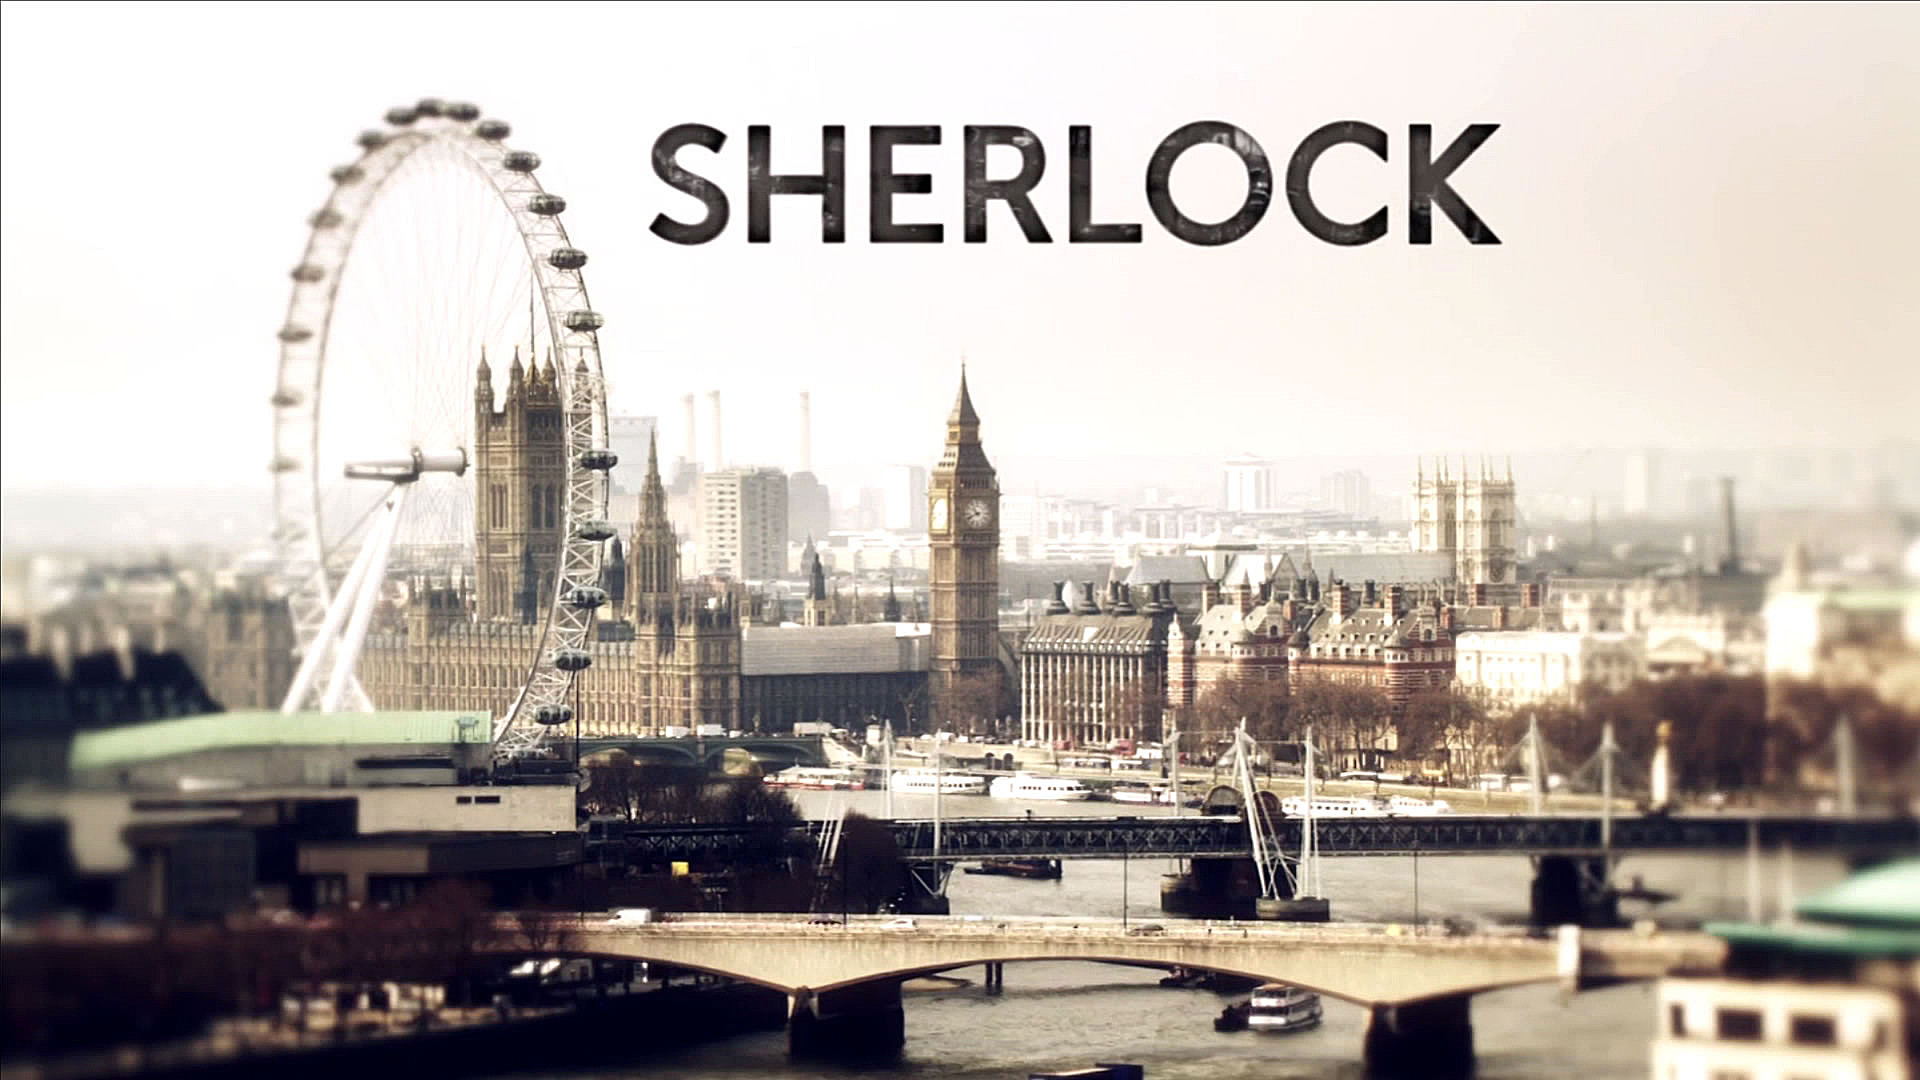 … Sherlock Logon Screen for Windows Vista/7 by shorlok